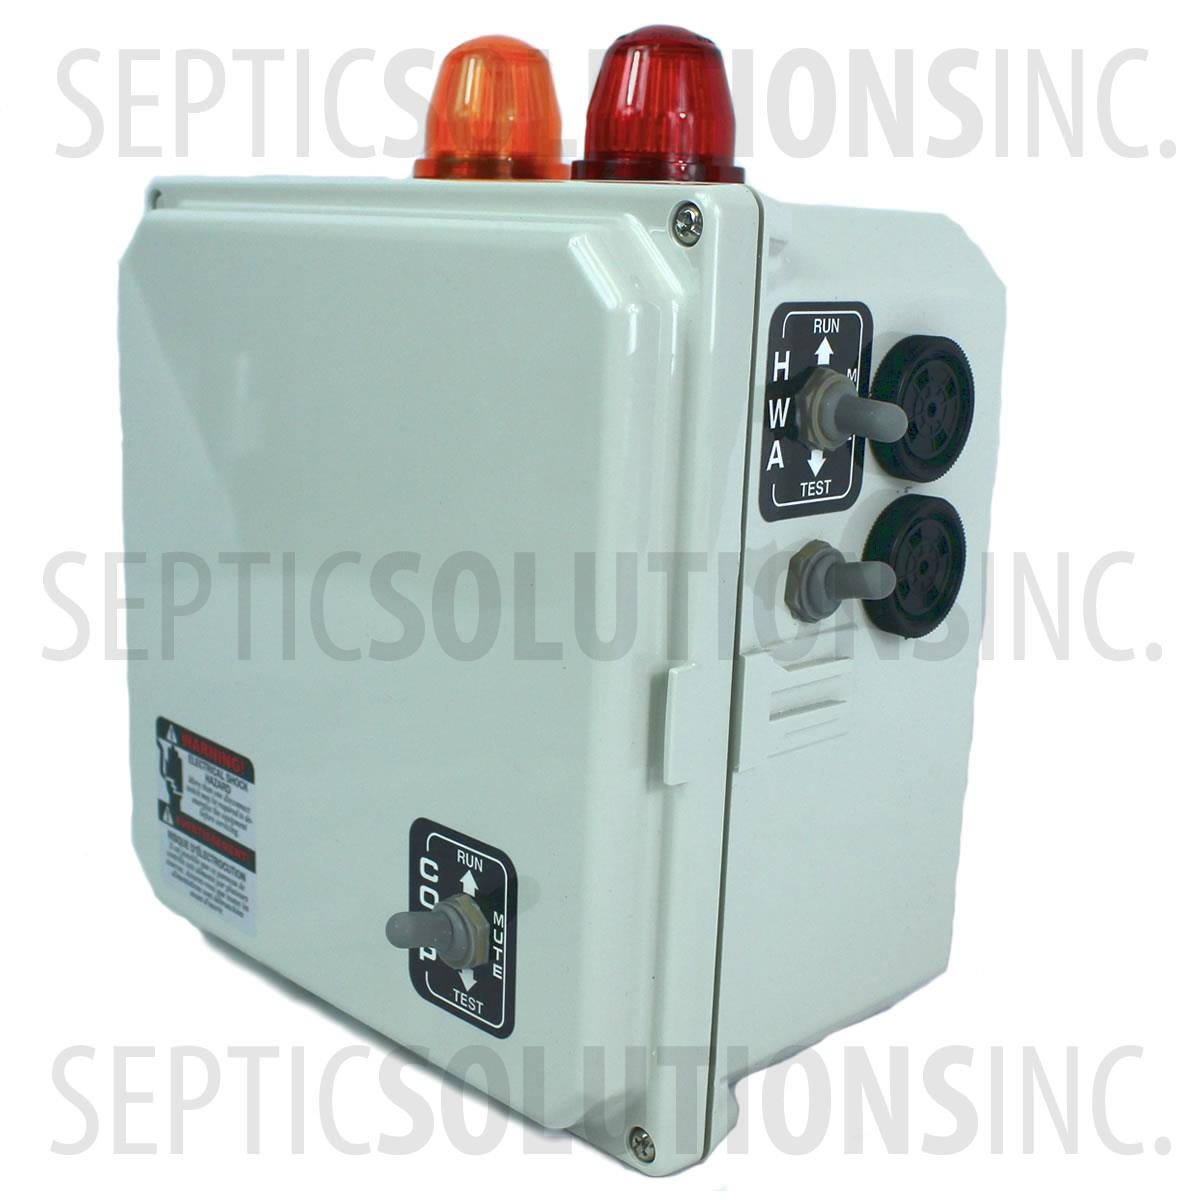 50B138_2?w=300 aerobic septic system control panels and alarms free shipping  at honlapkeszites.co